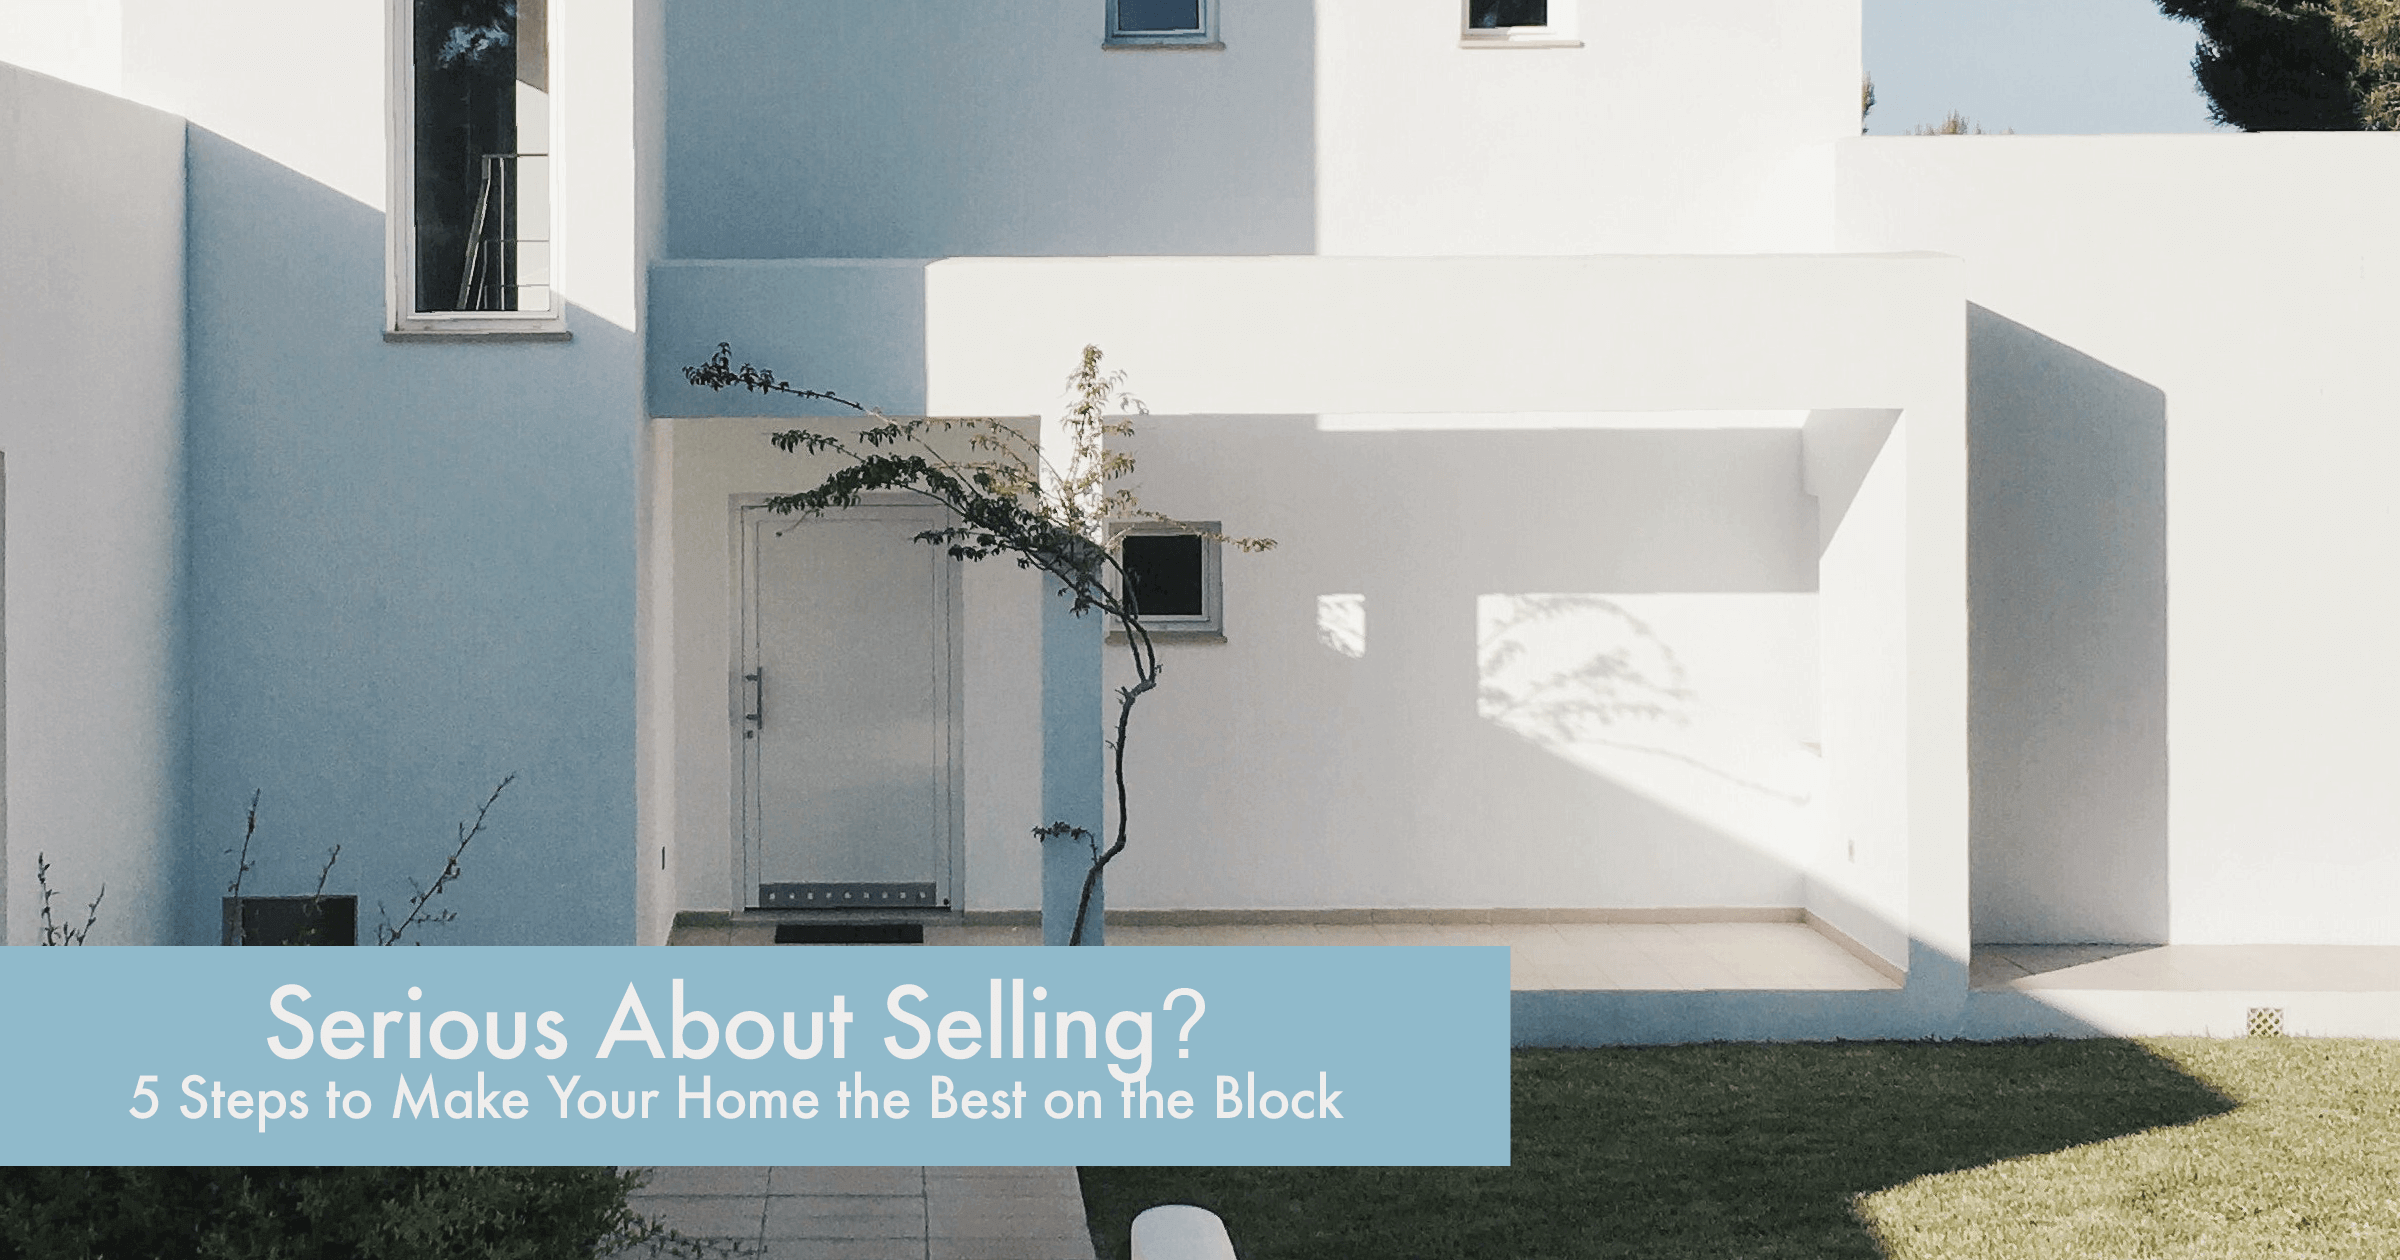 Serious About Selling 5 Steps to Make Your Home  the Best on the Block